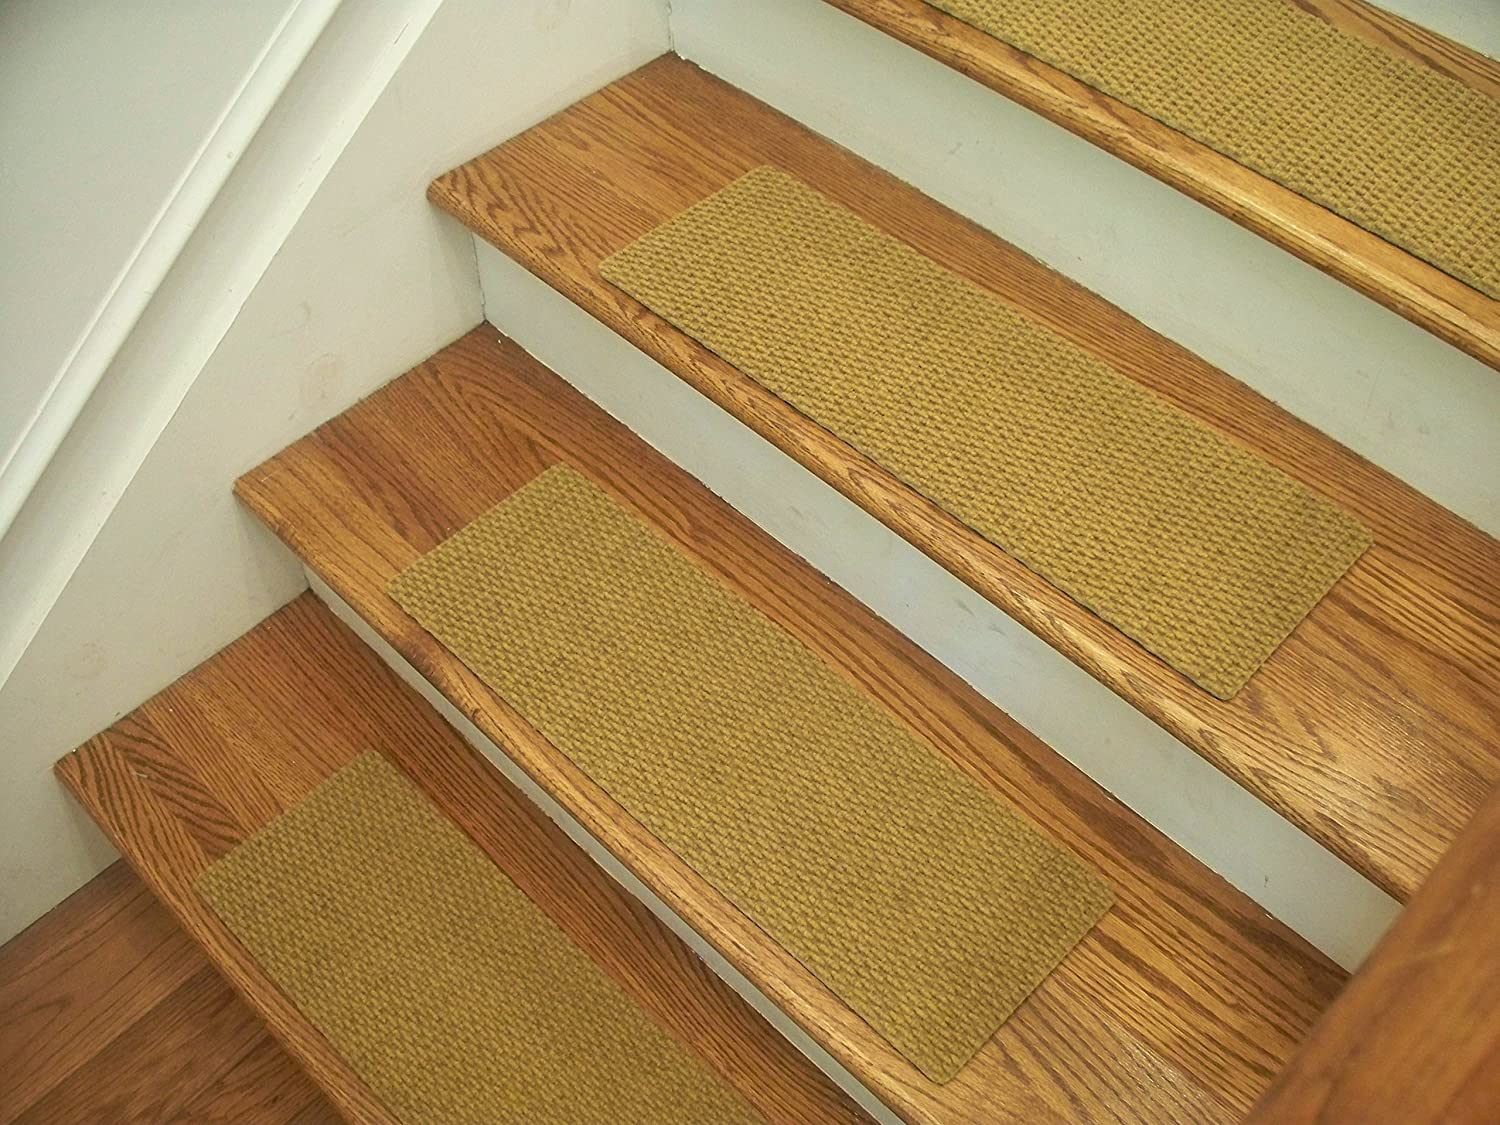 Essential Carpet Stair Treads - Style: Berber - Color: Natural - Size: 24' x 8' - Set of 15 Essential Specialty Products 660335151466